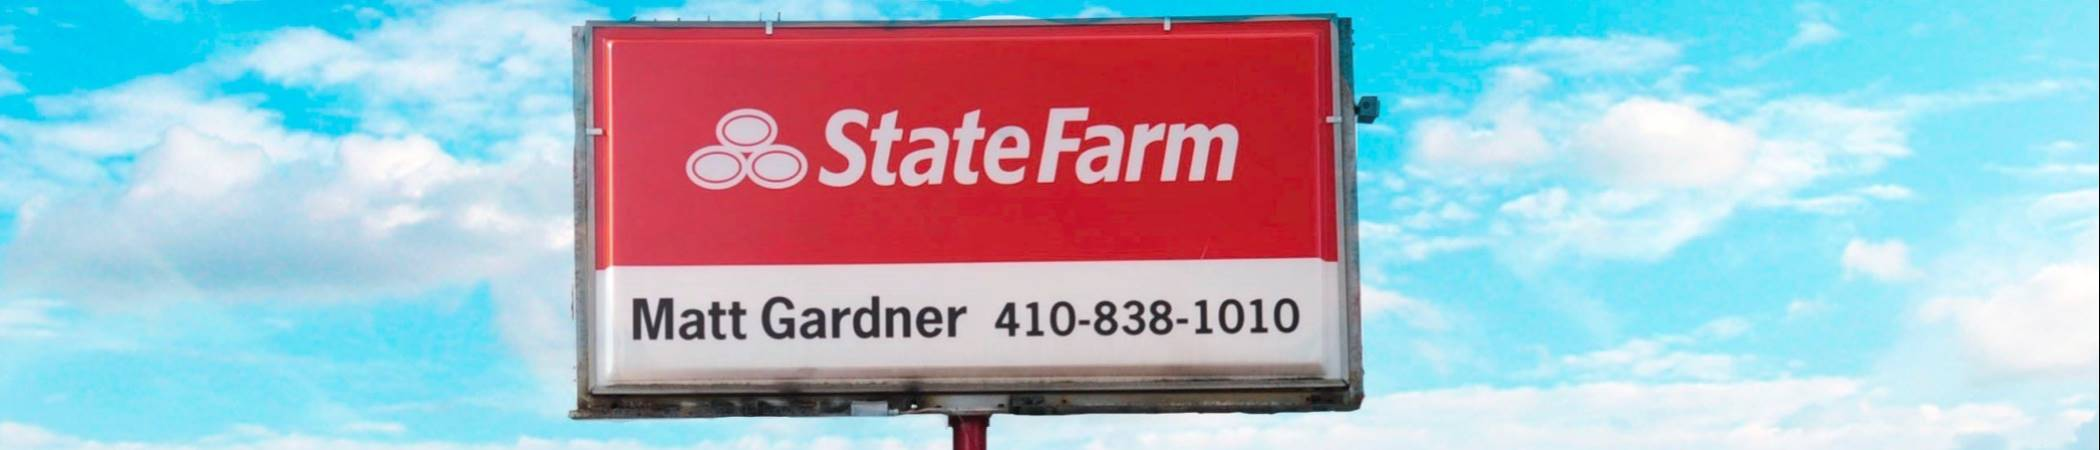 State Farm Insurance Agent <%= name %> in <%= city %> <%= state %>